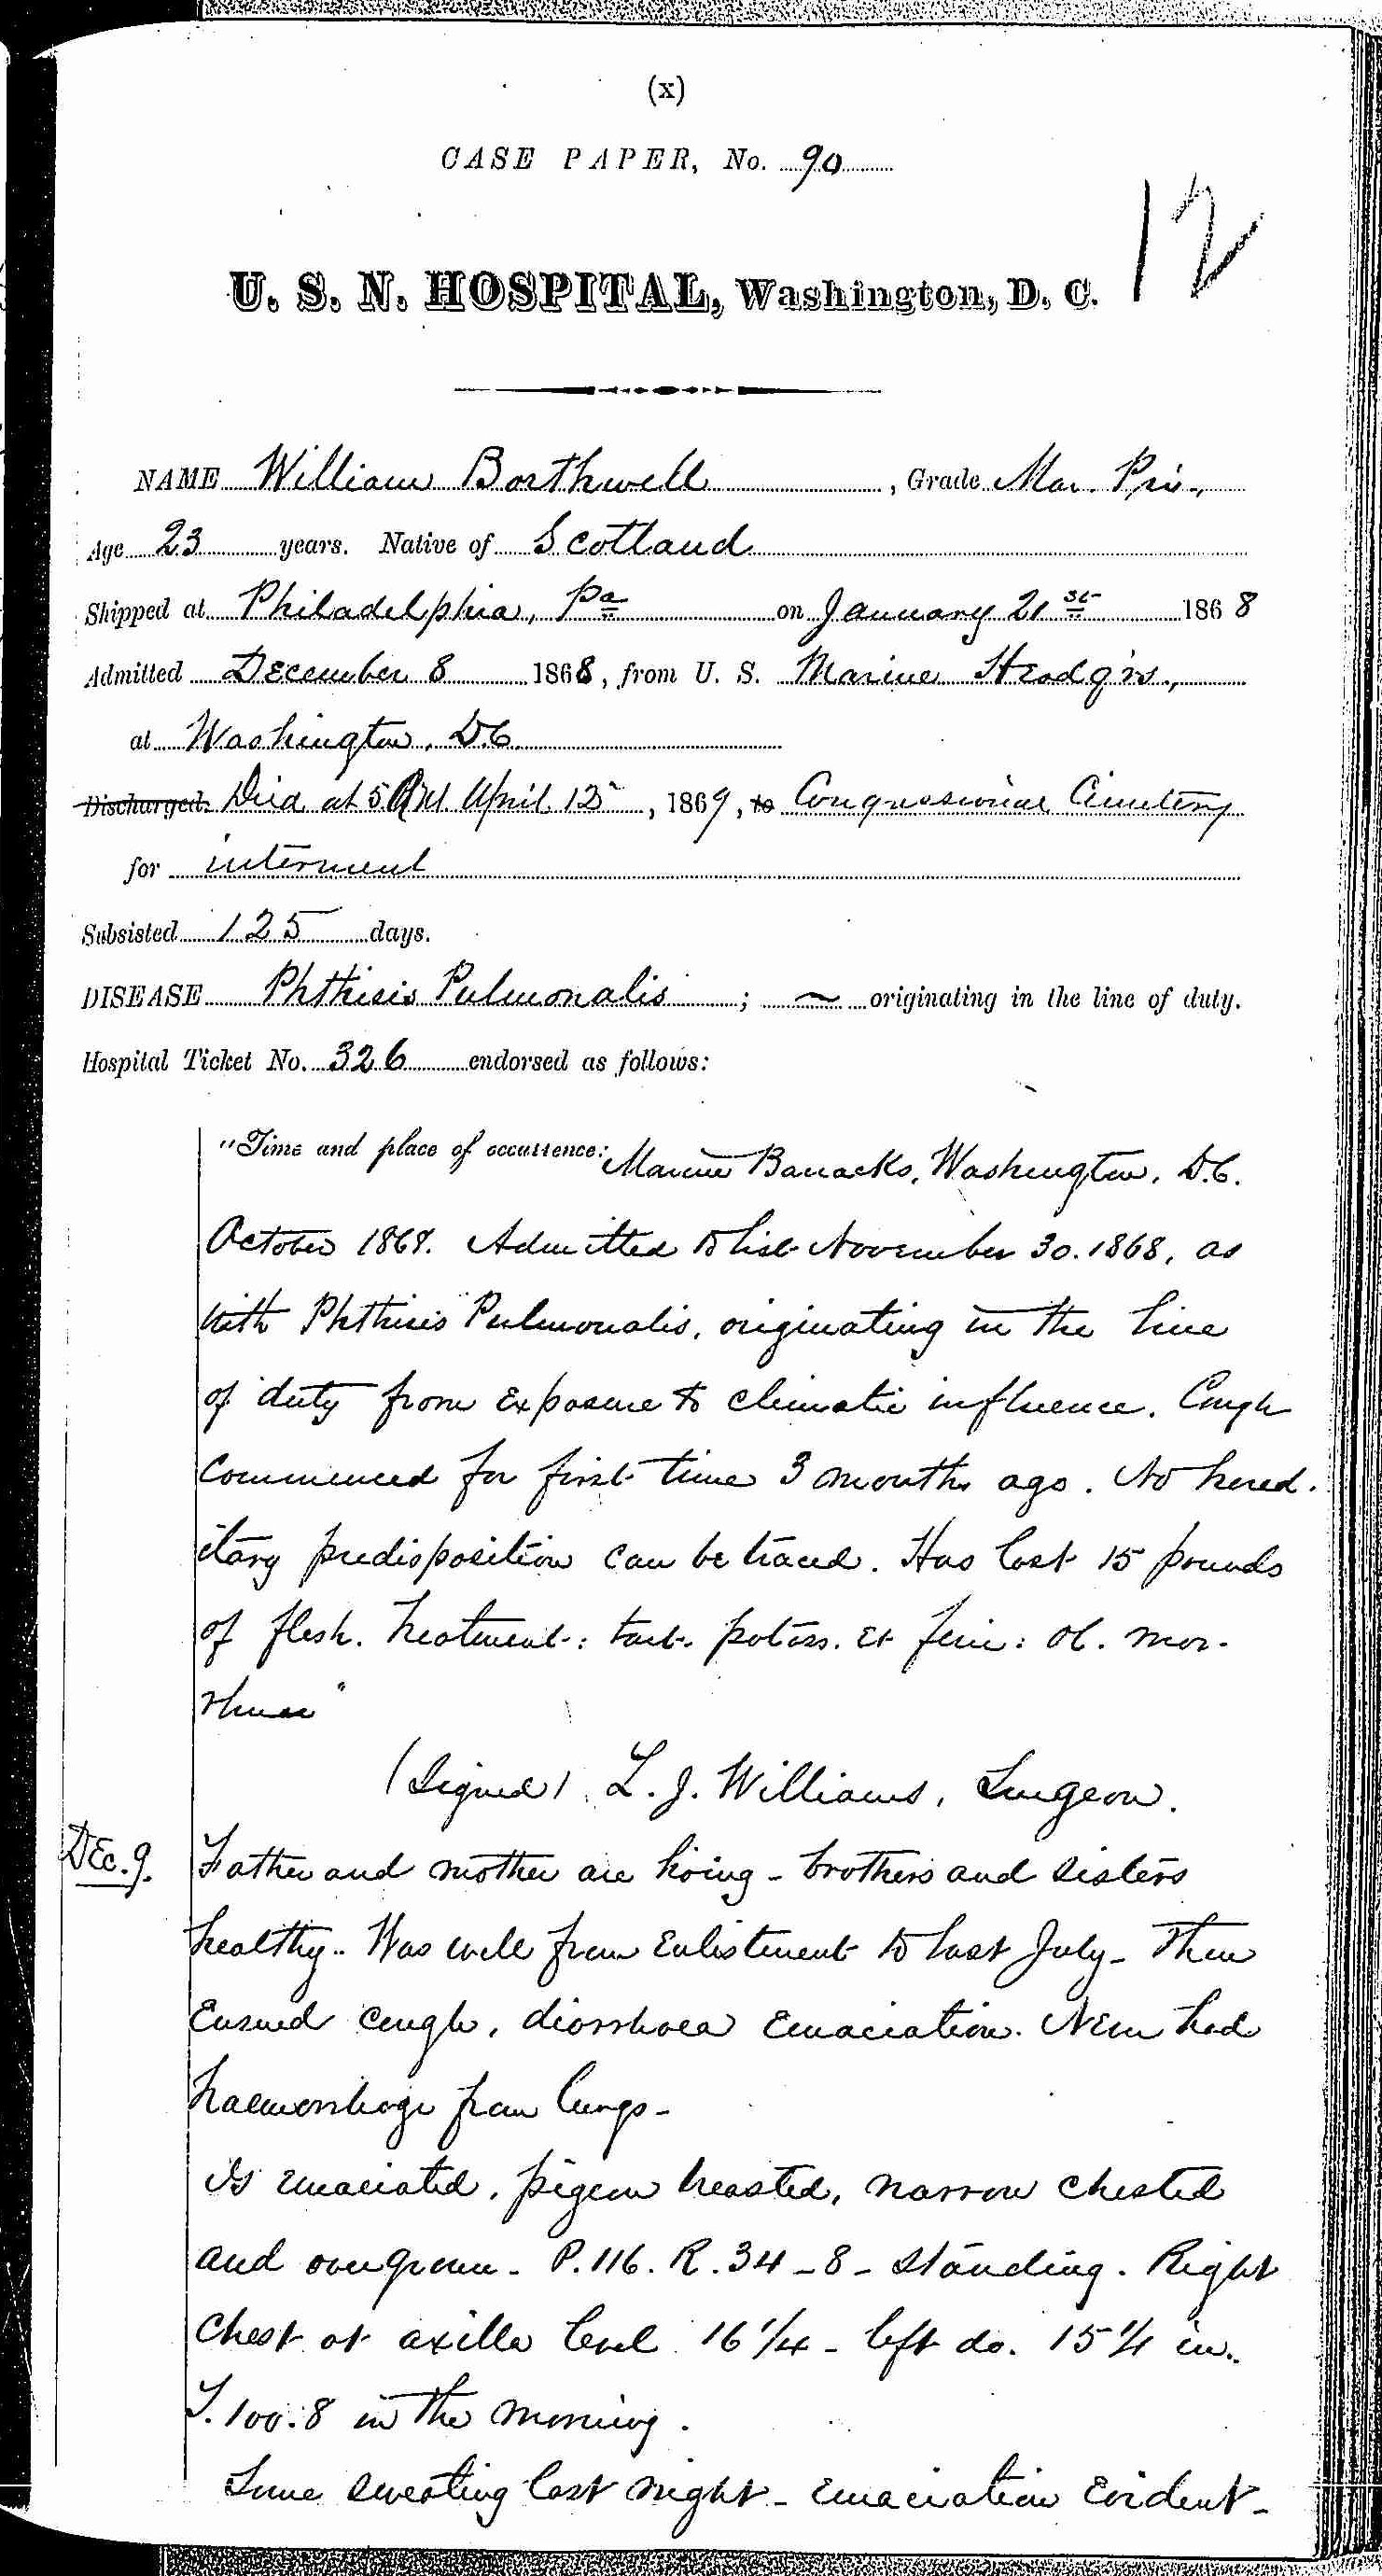 Entry for William Bathwell (page 1 of 13) in the log Hospital Tickets and Case Papers - Naval Hospital - Washington, D.C. - 1868-69